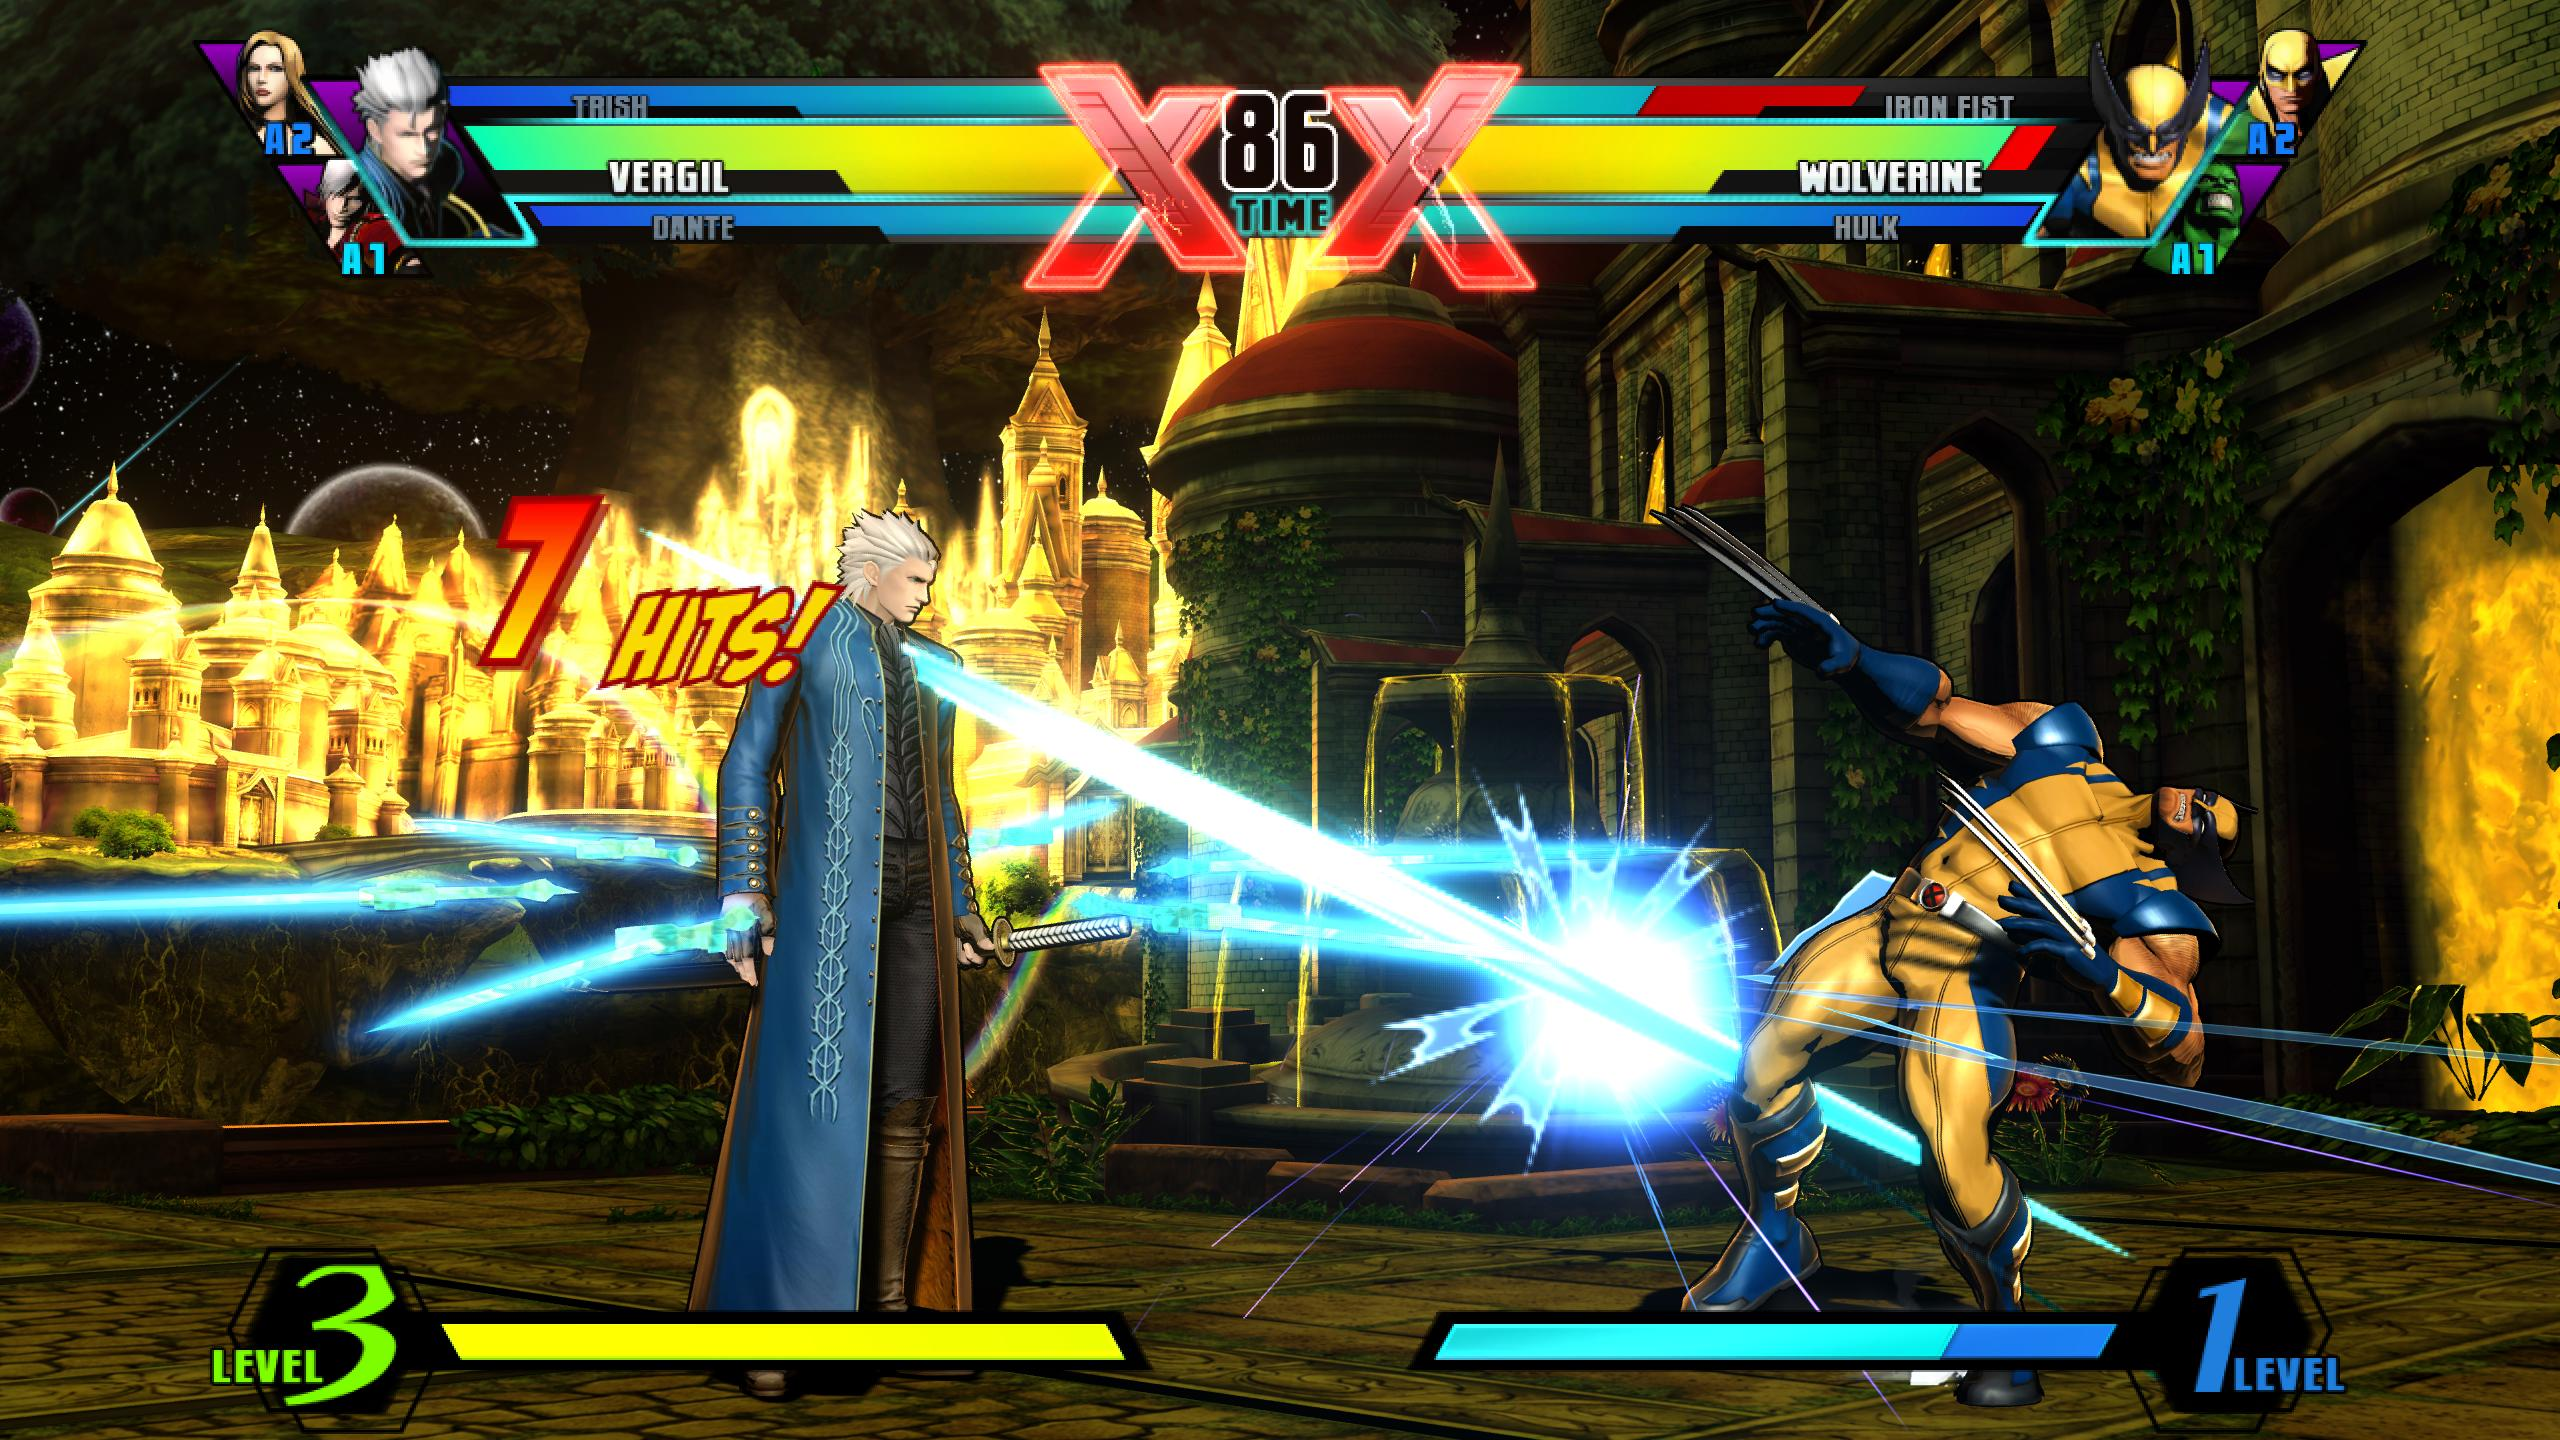 Vergil dans Ultimate Marvel vs. Capcom 3 6150570621_29c43c61ab_o